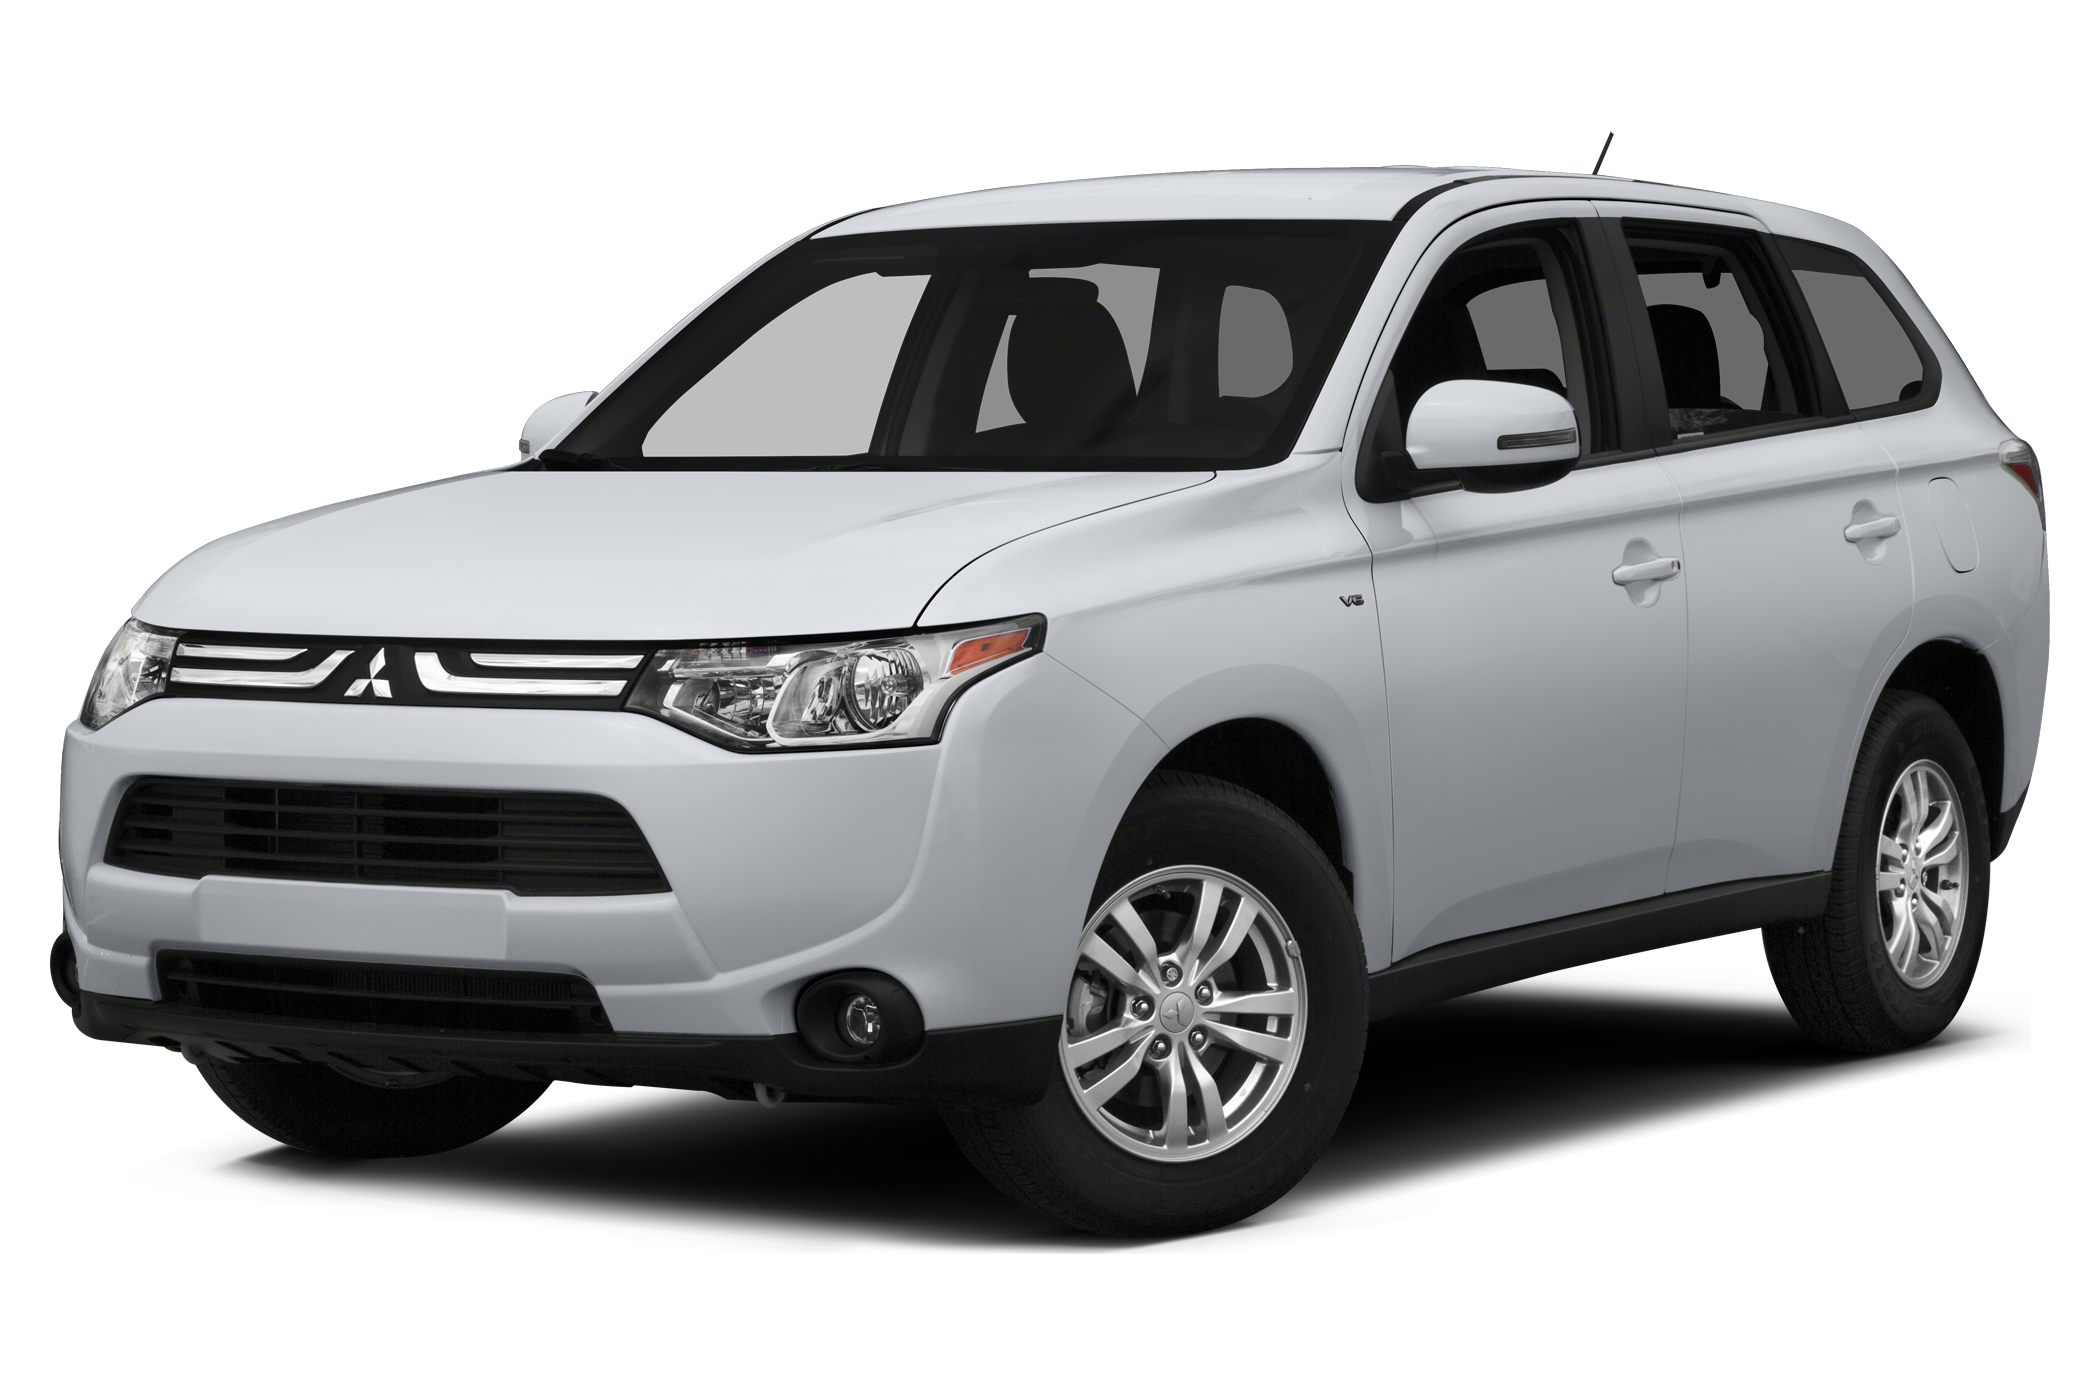 2014 Mitsubishi Outlander SE Certfied by CARFAX - NO ACCIDENTS and ONE OWNER GREEN TAG SPECIAL